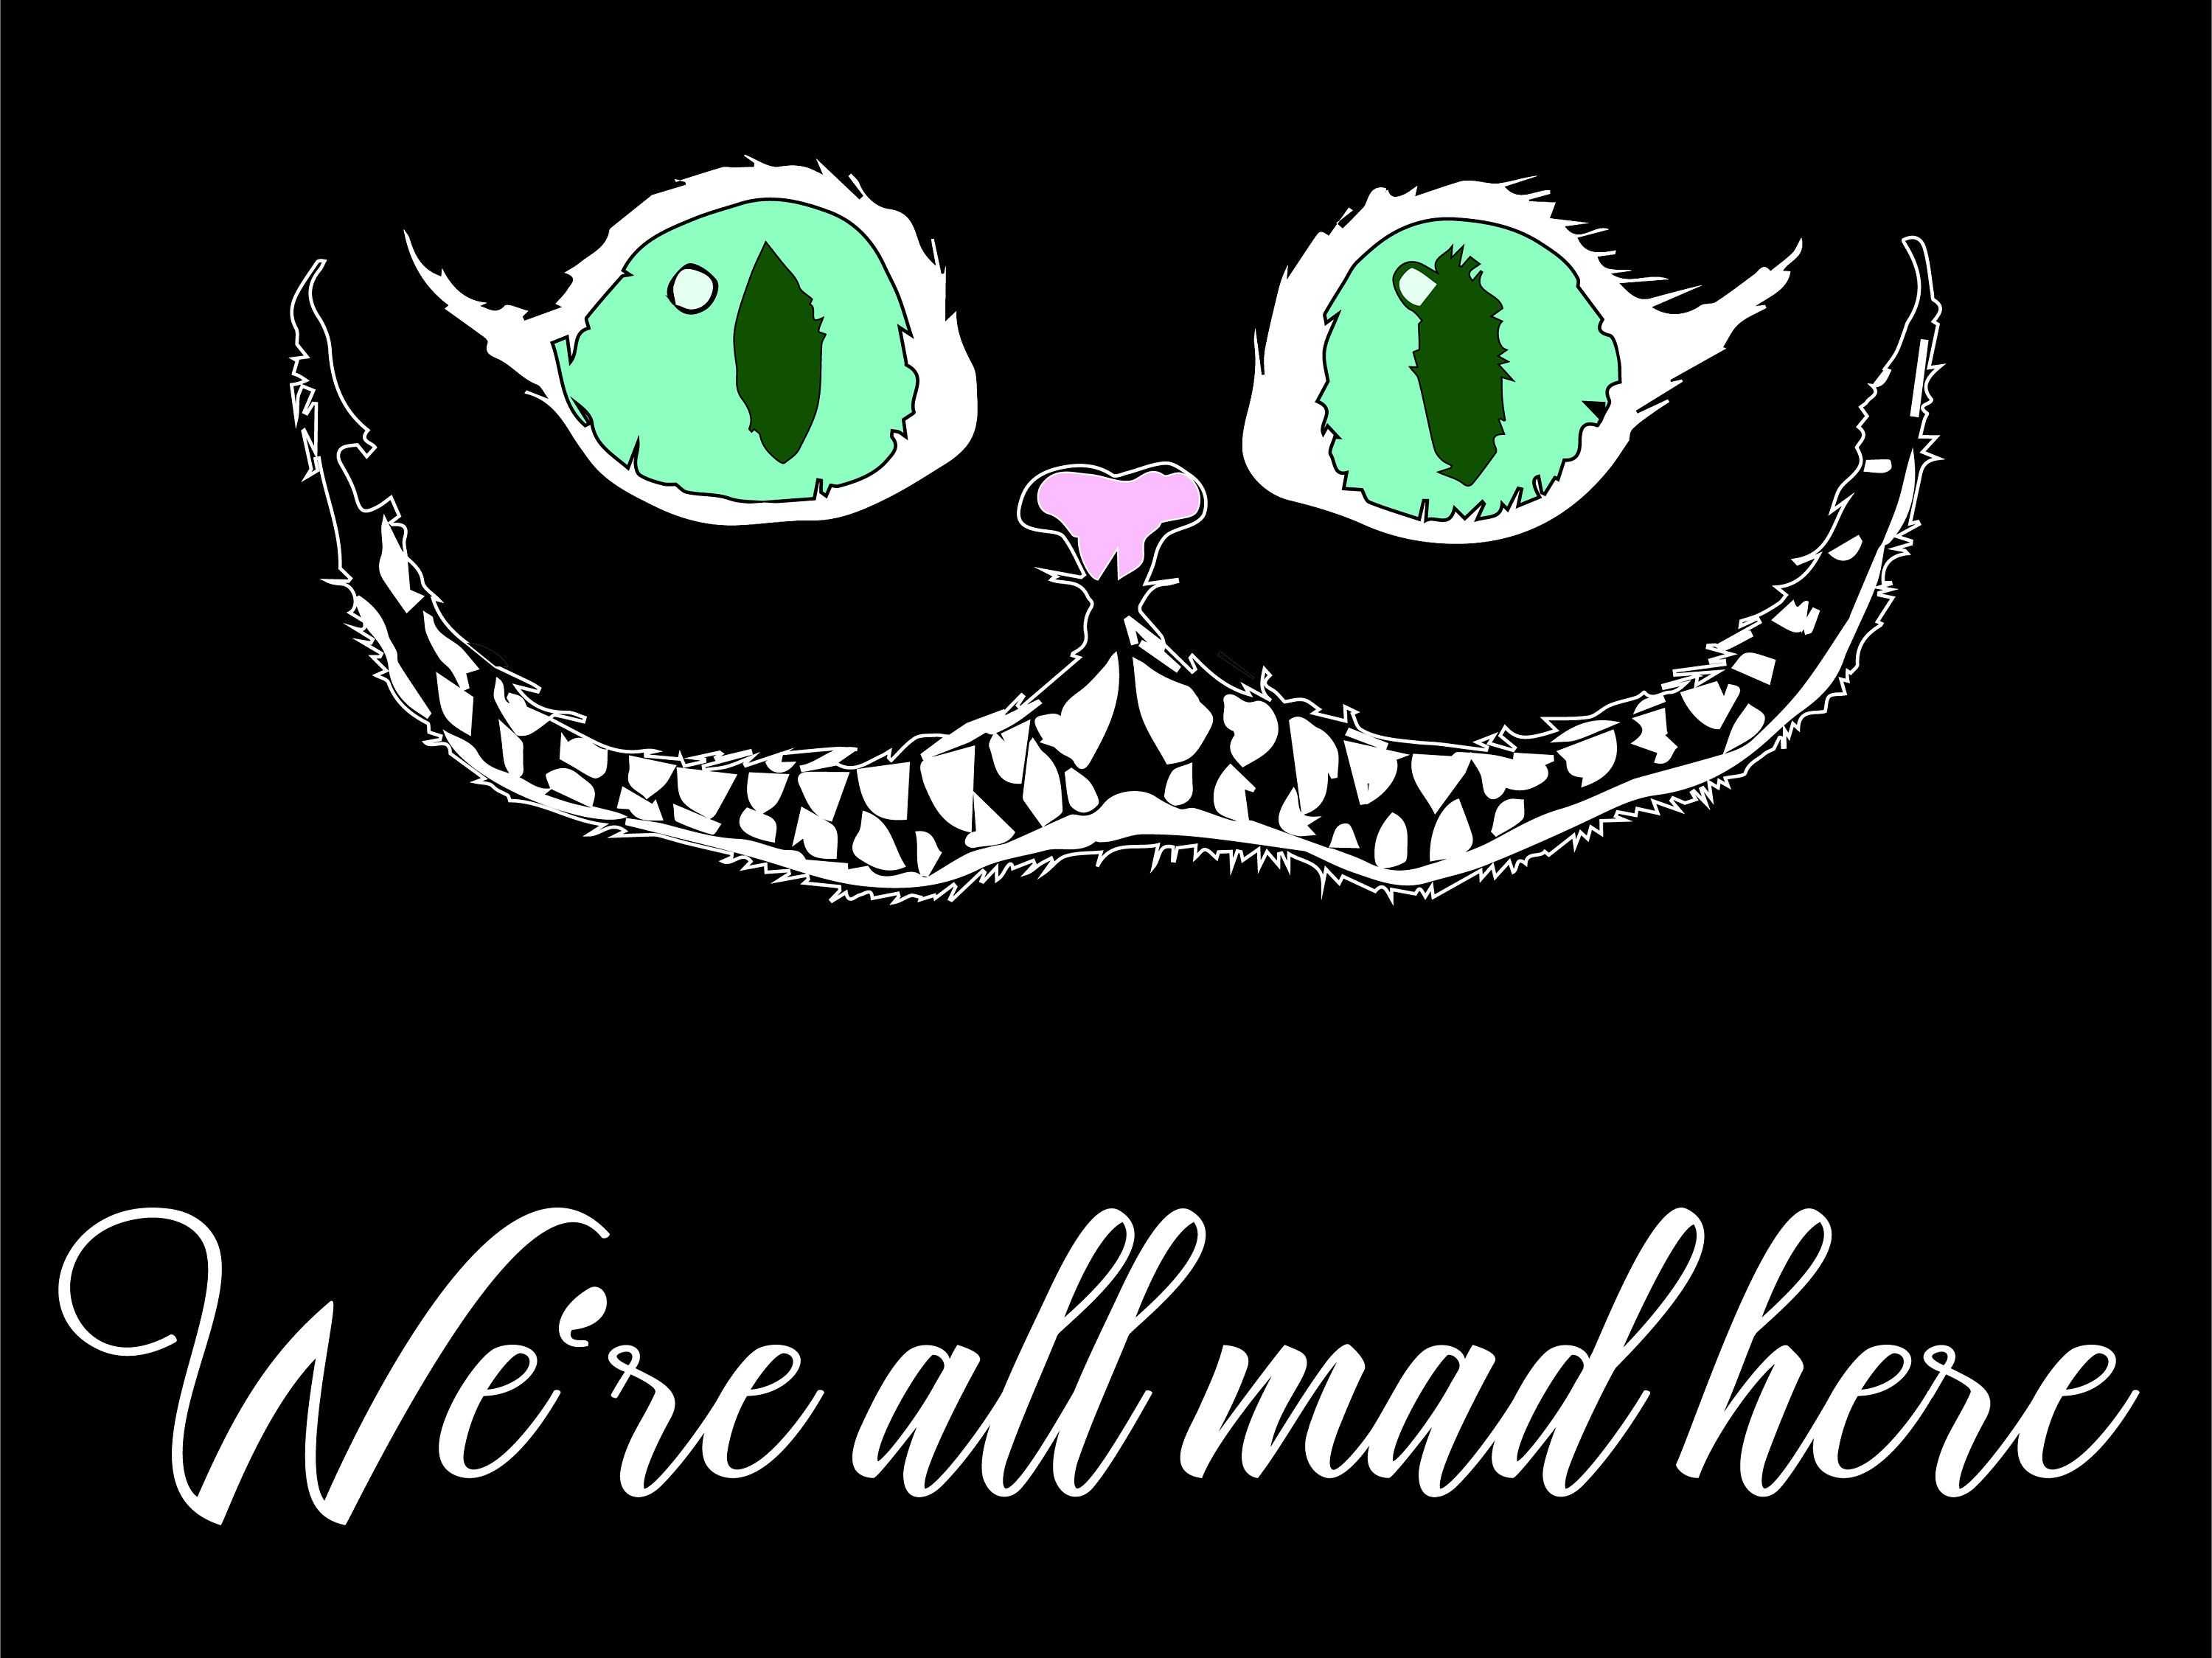 Cat Svg Cat And Girl Cat Smile Taleland Svg For Cricut Etsy Cheshire Cat Smile Svg Cat Clipart